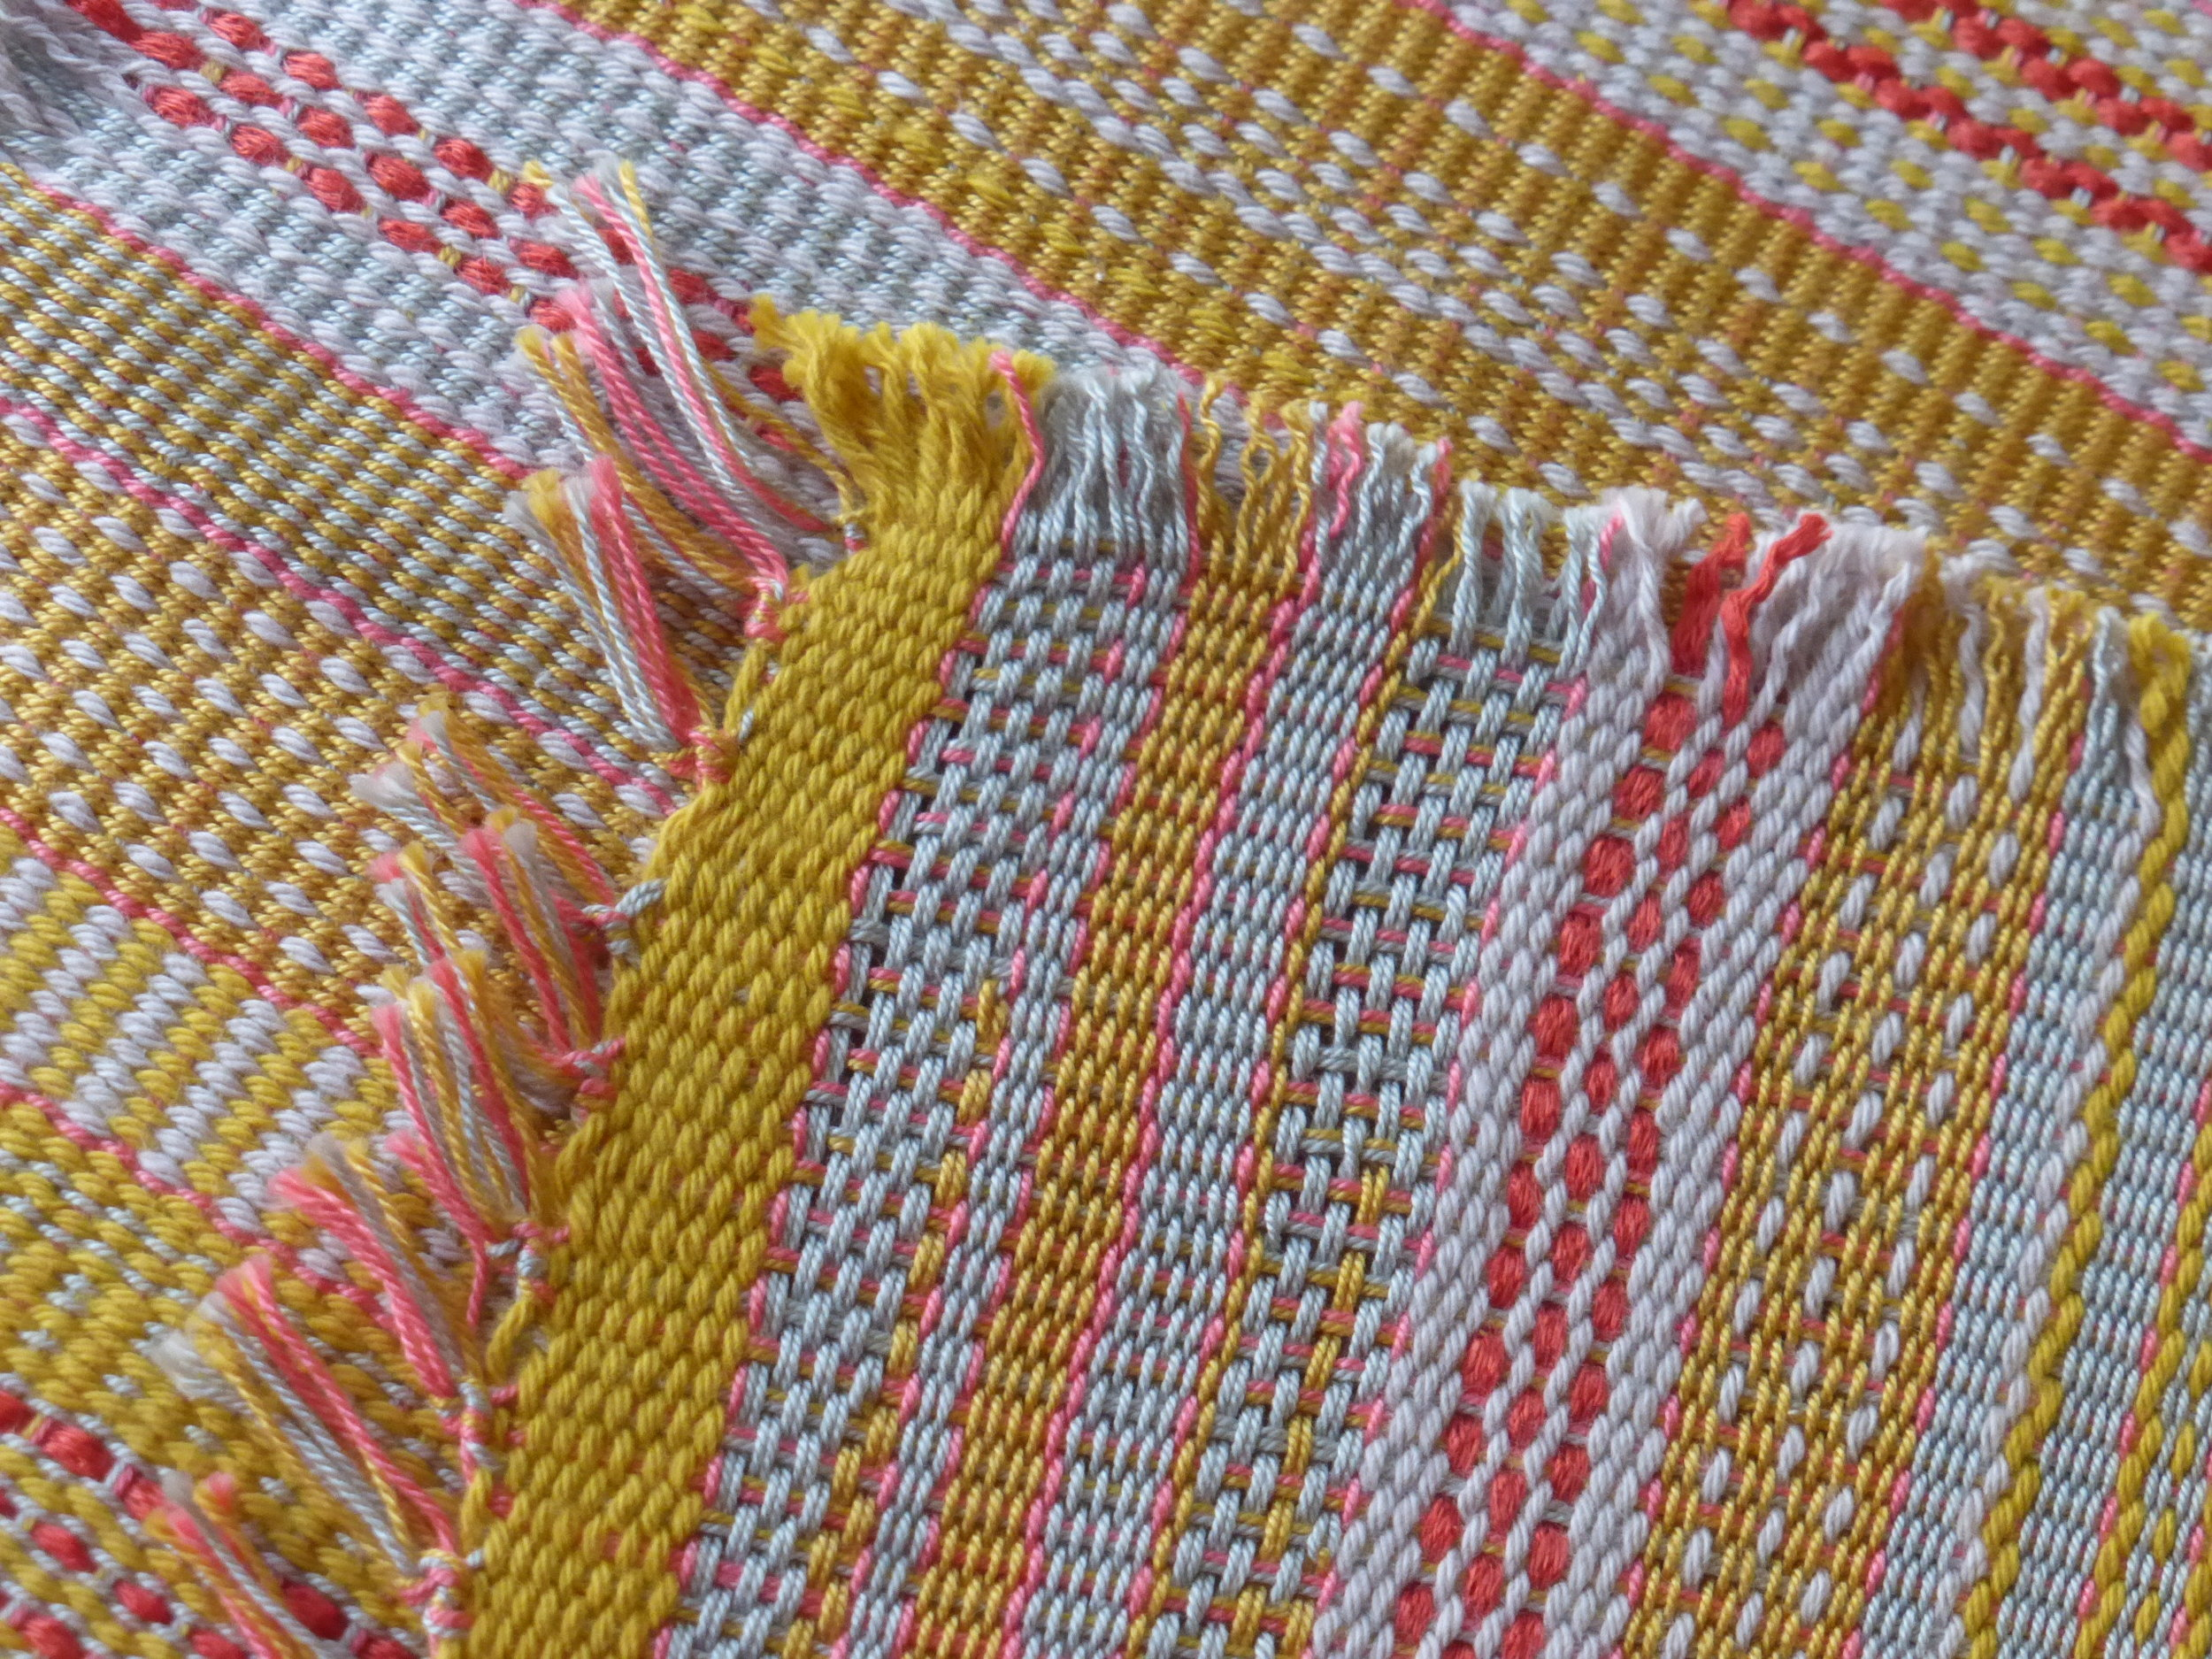 Close up of some of the patterns. The fabric has a nice drape and some shine from the mercerized weft threads.